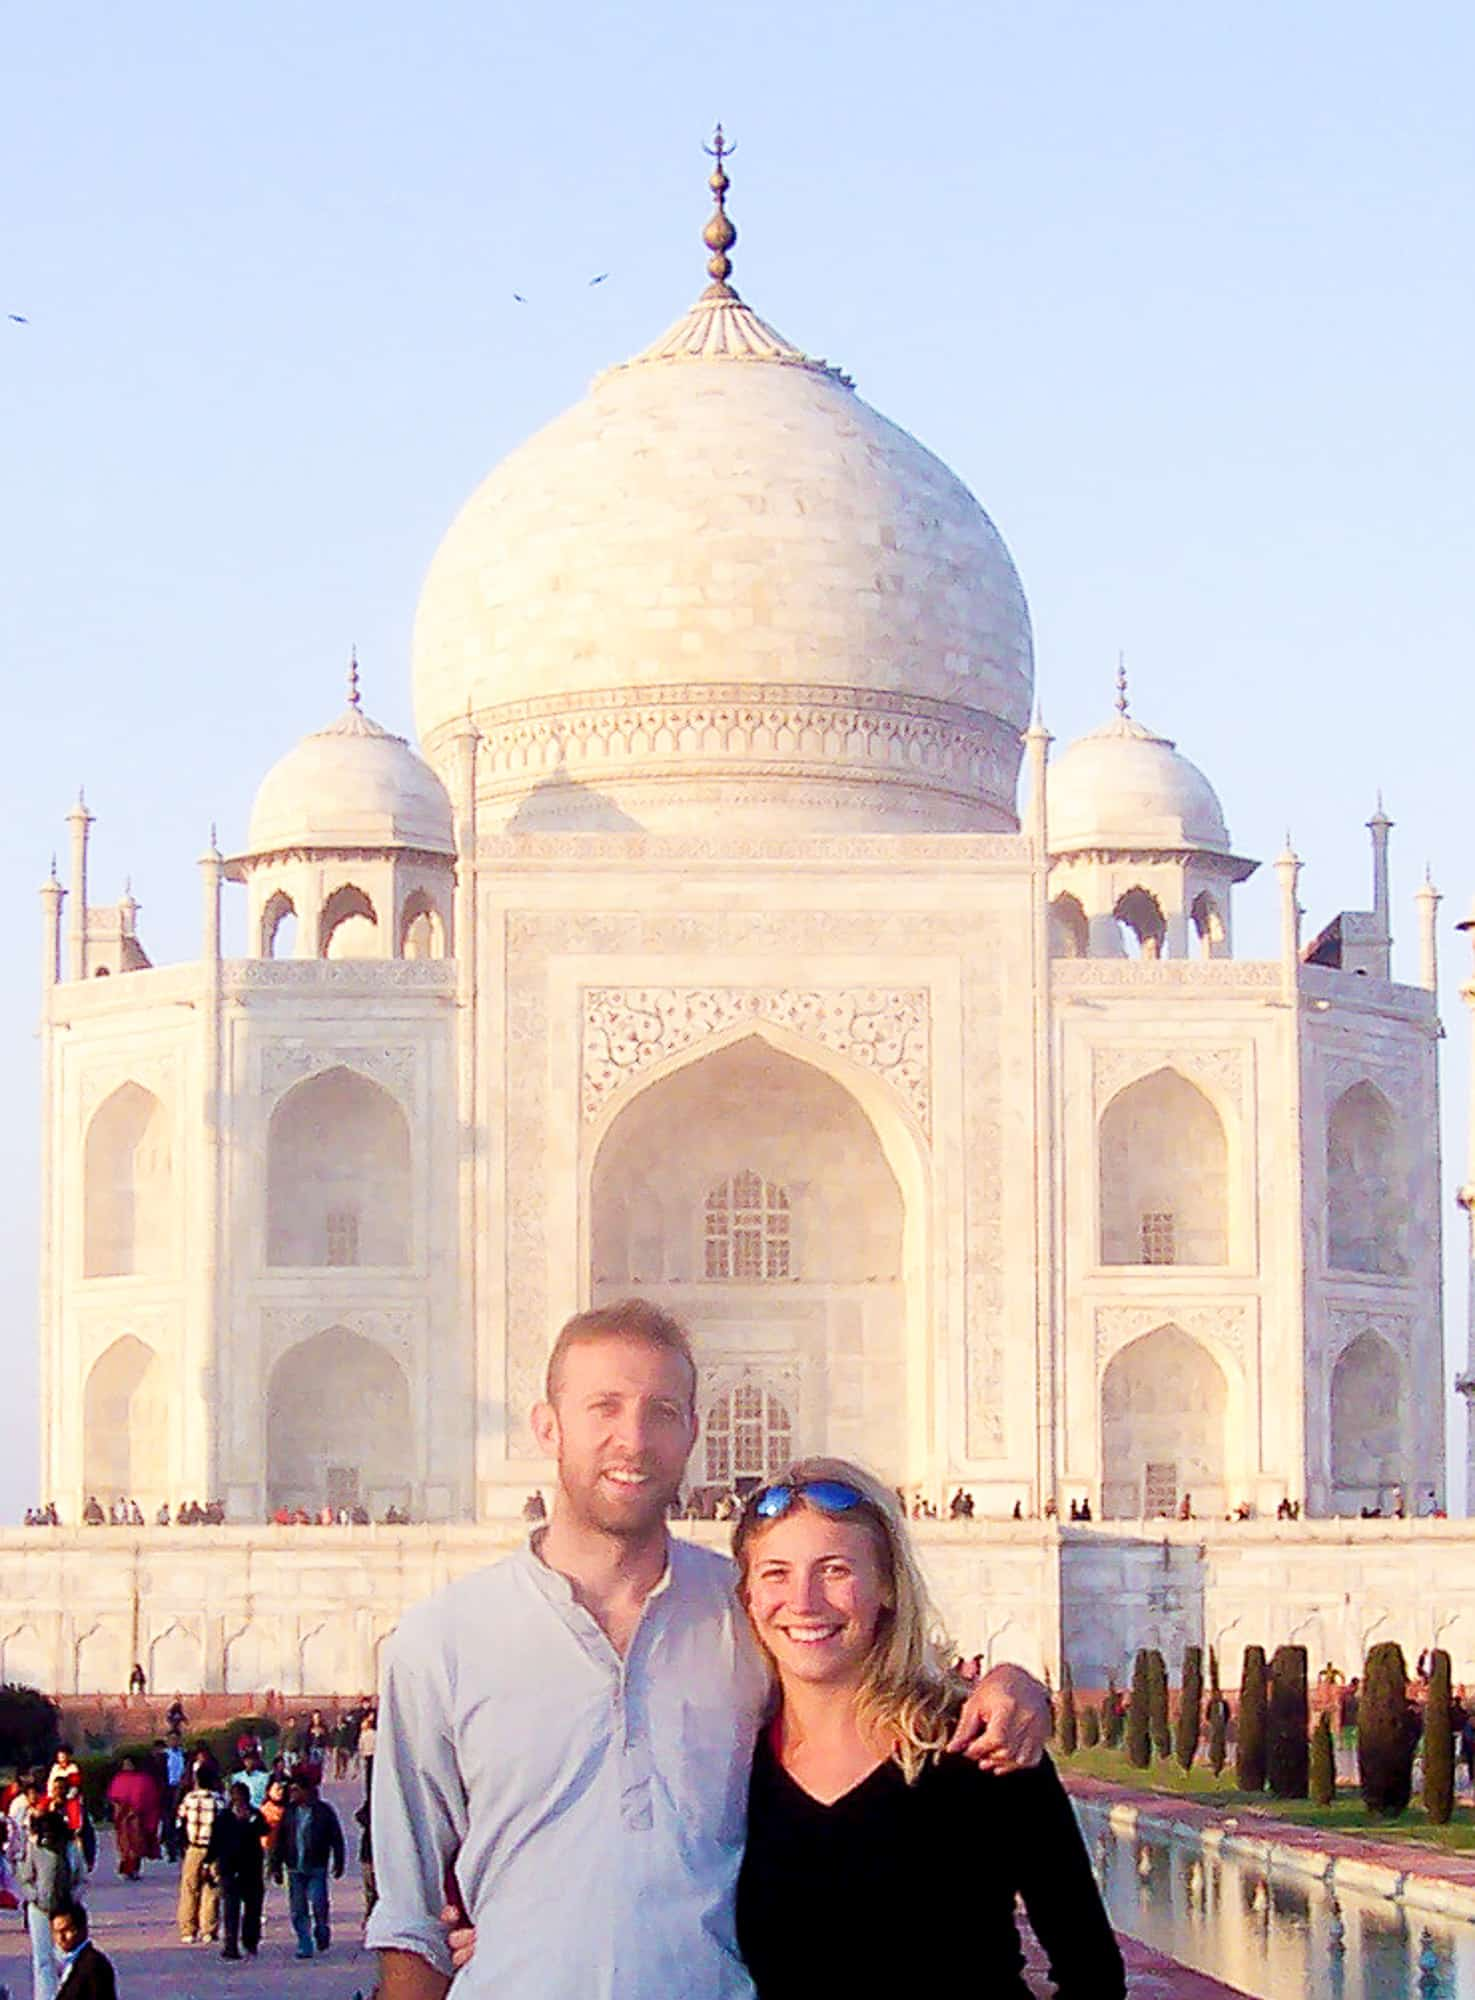 India - Agra - Taj Mahal - Iconic Spot - Abigail King and Husband